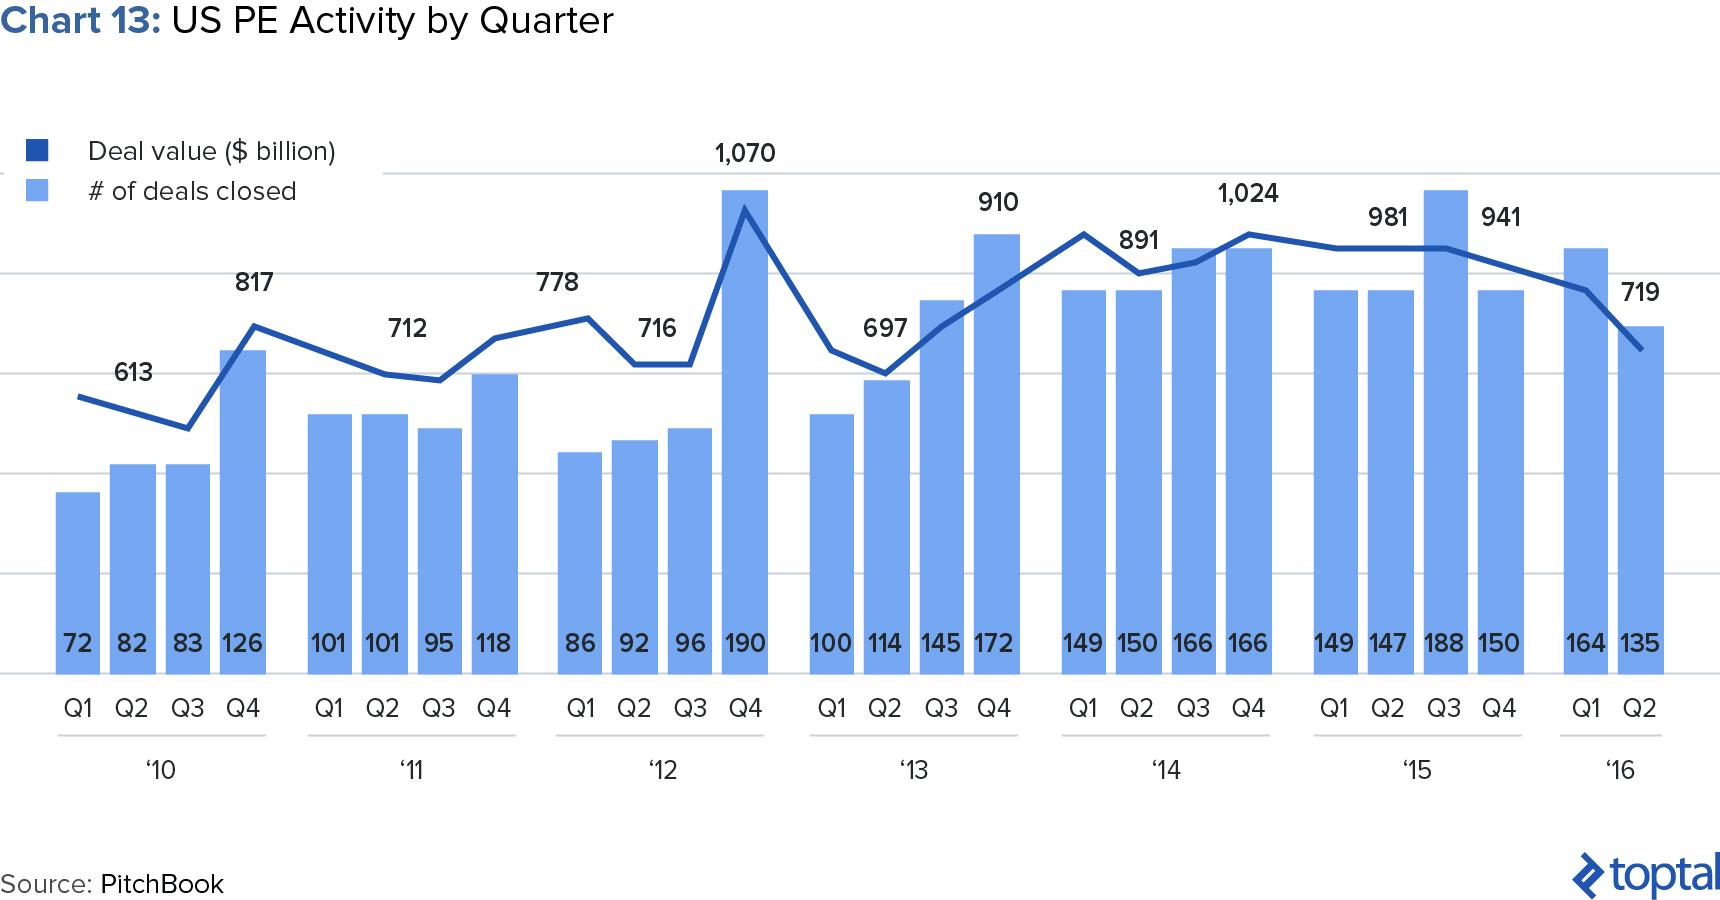 Chart 13: US PE Activity by Quarter